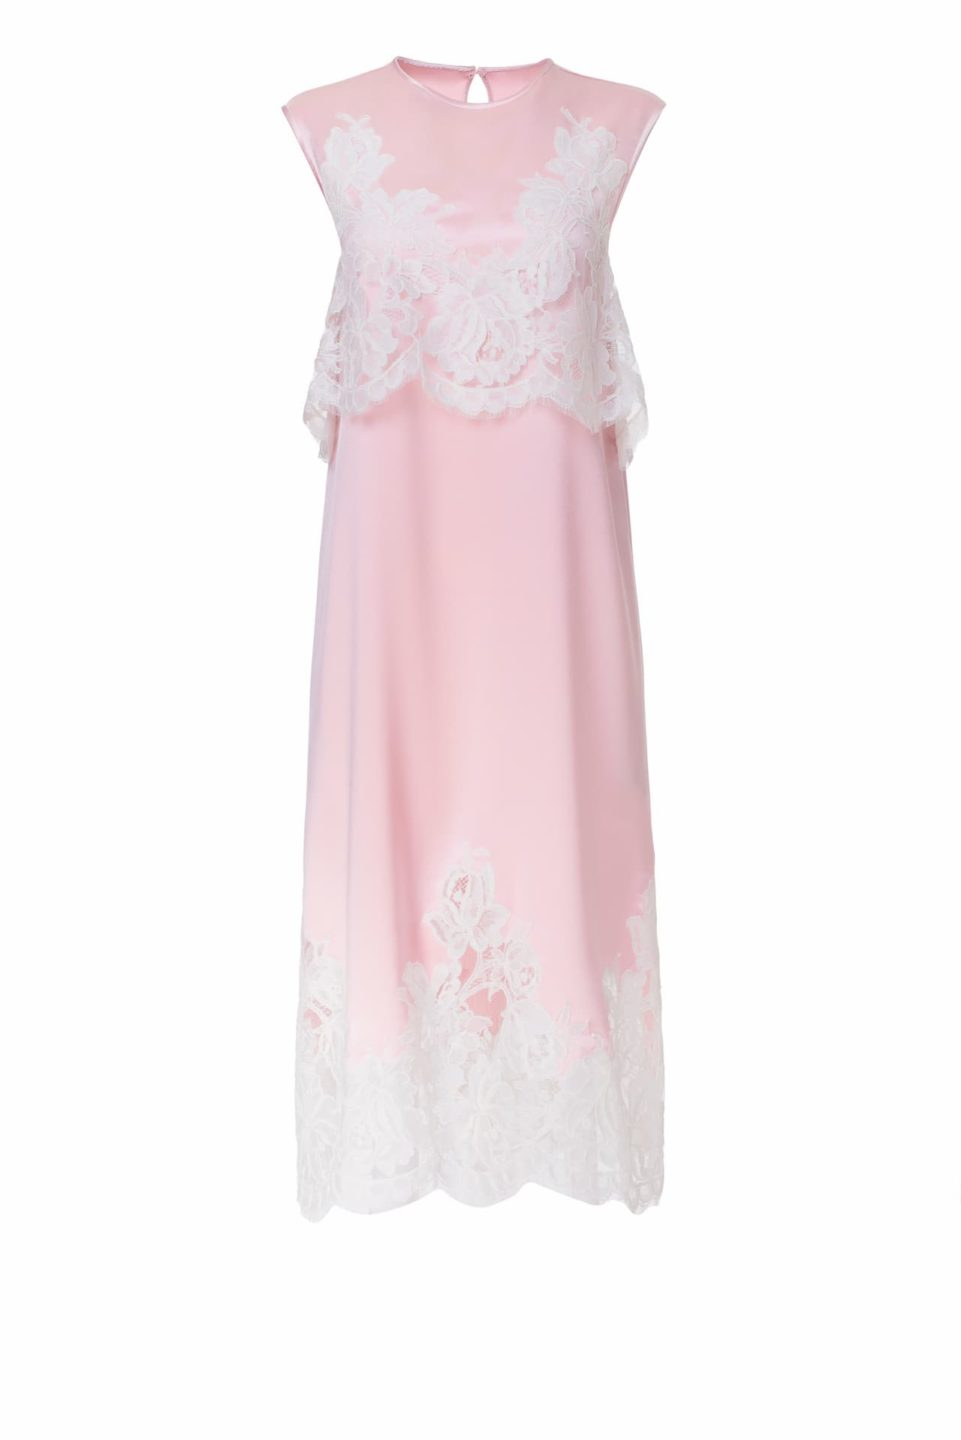 Beverly PS2113 Pink Satin Midi Dress with Popover Bodice & Cordone French Lace Hollow-Out Appliques